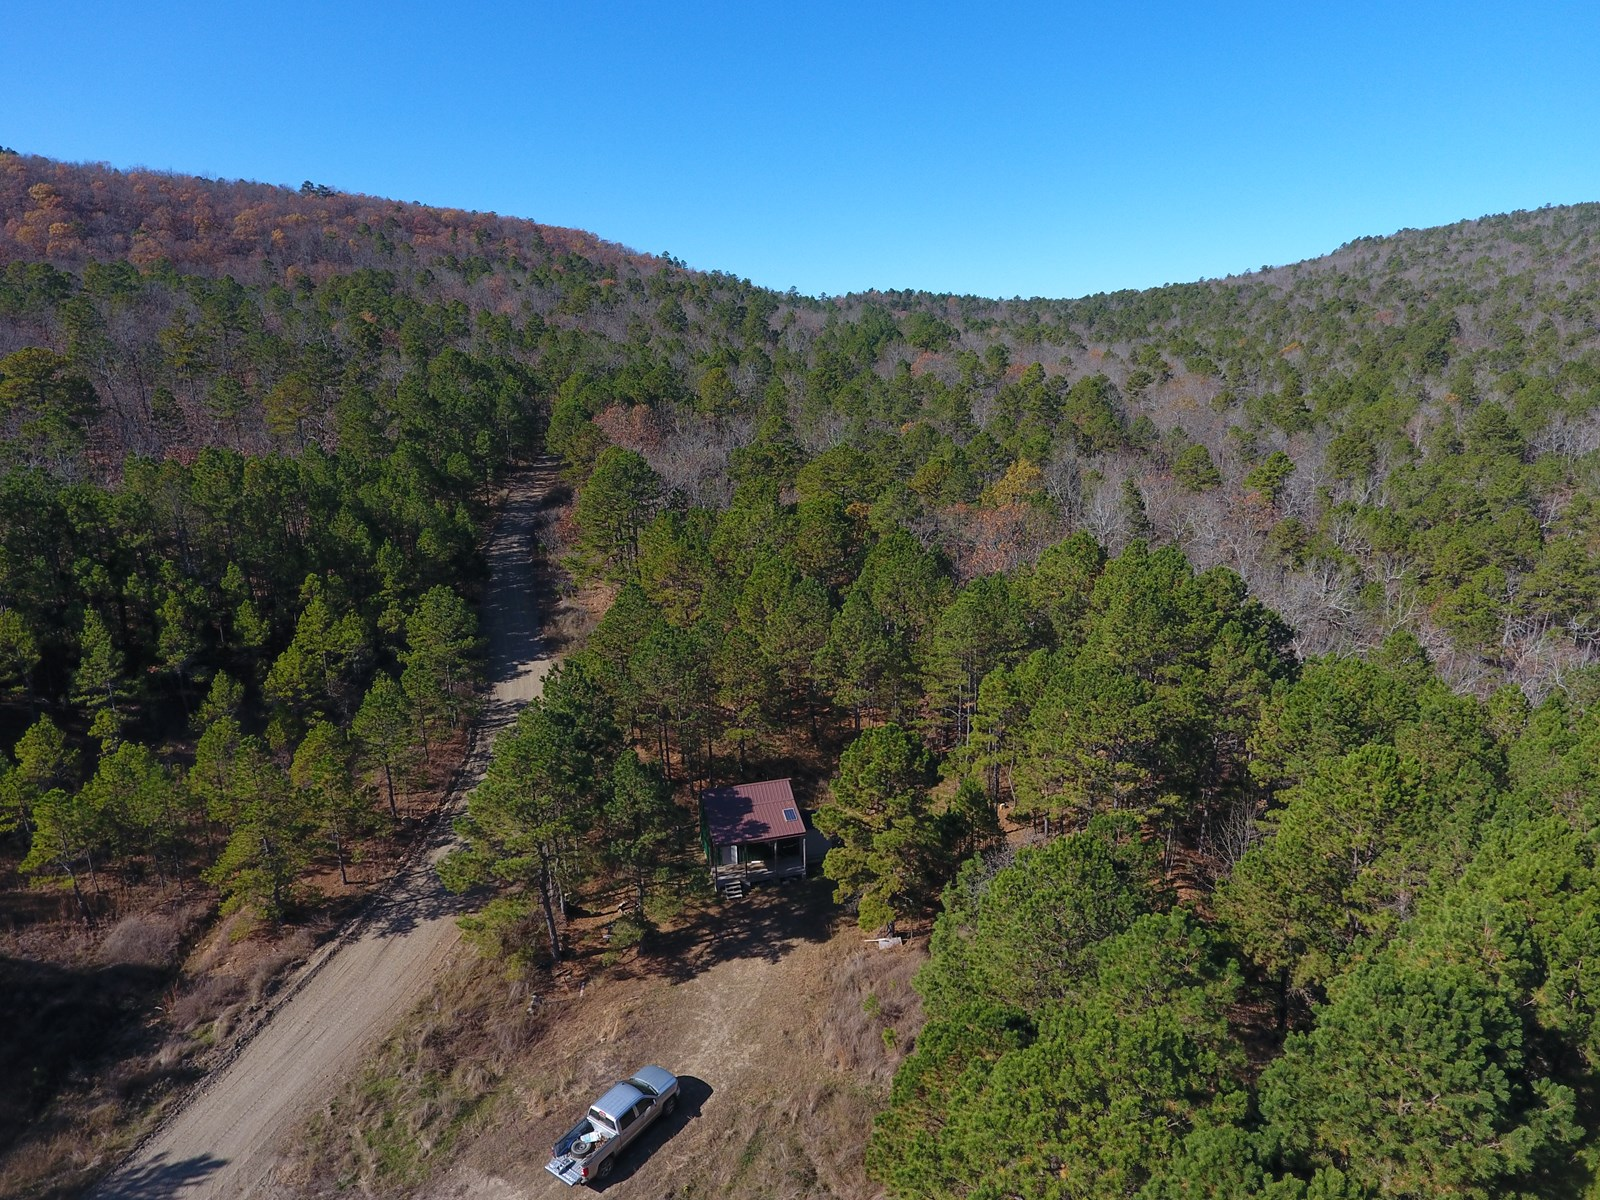 58 Acre Recreational Property with Off-Grid Cabin